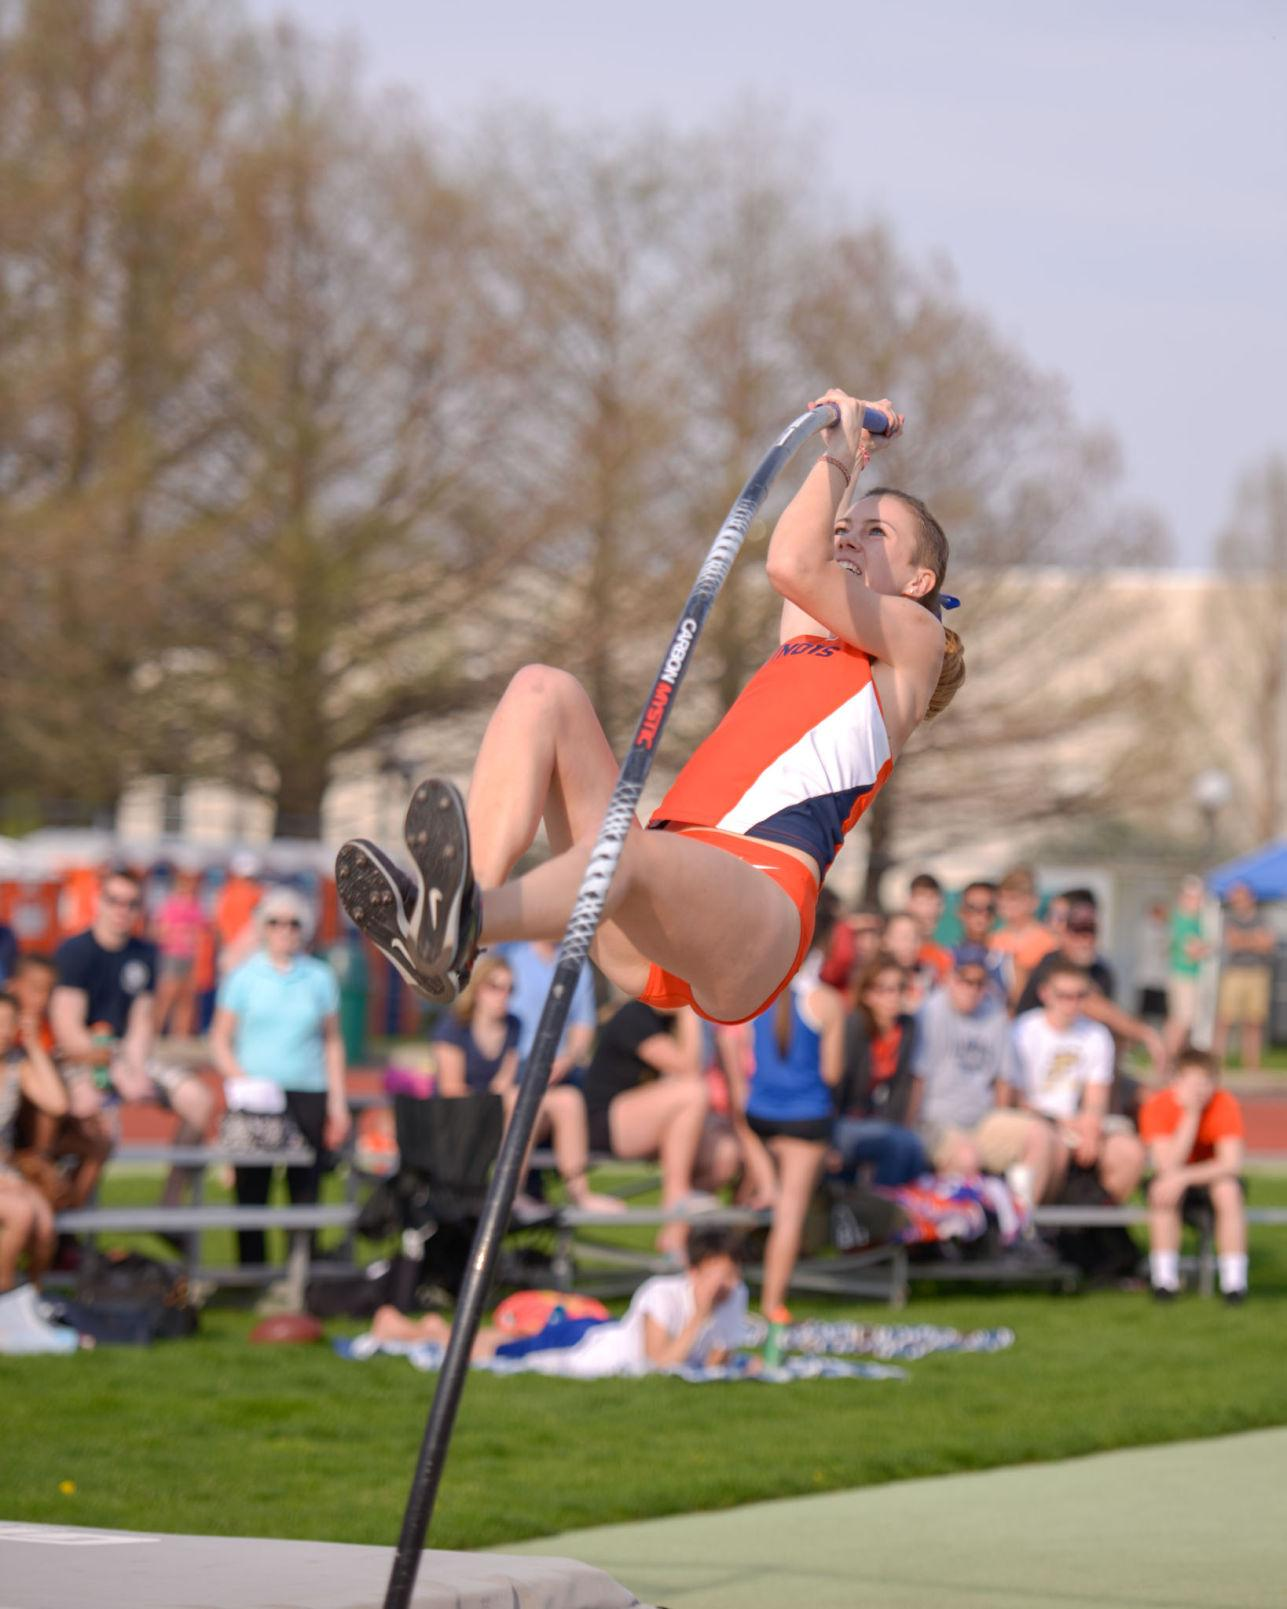 %3Cp%3EThe+Illini+are+trying+to+make+a+statement+after+last+year%E2%80%99s+last-place+finish+at+the+Drake+Relays.%3C%2Fp%3E